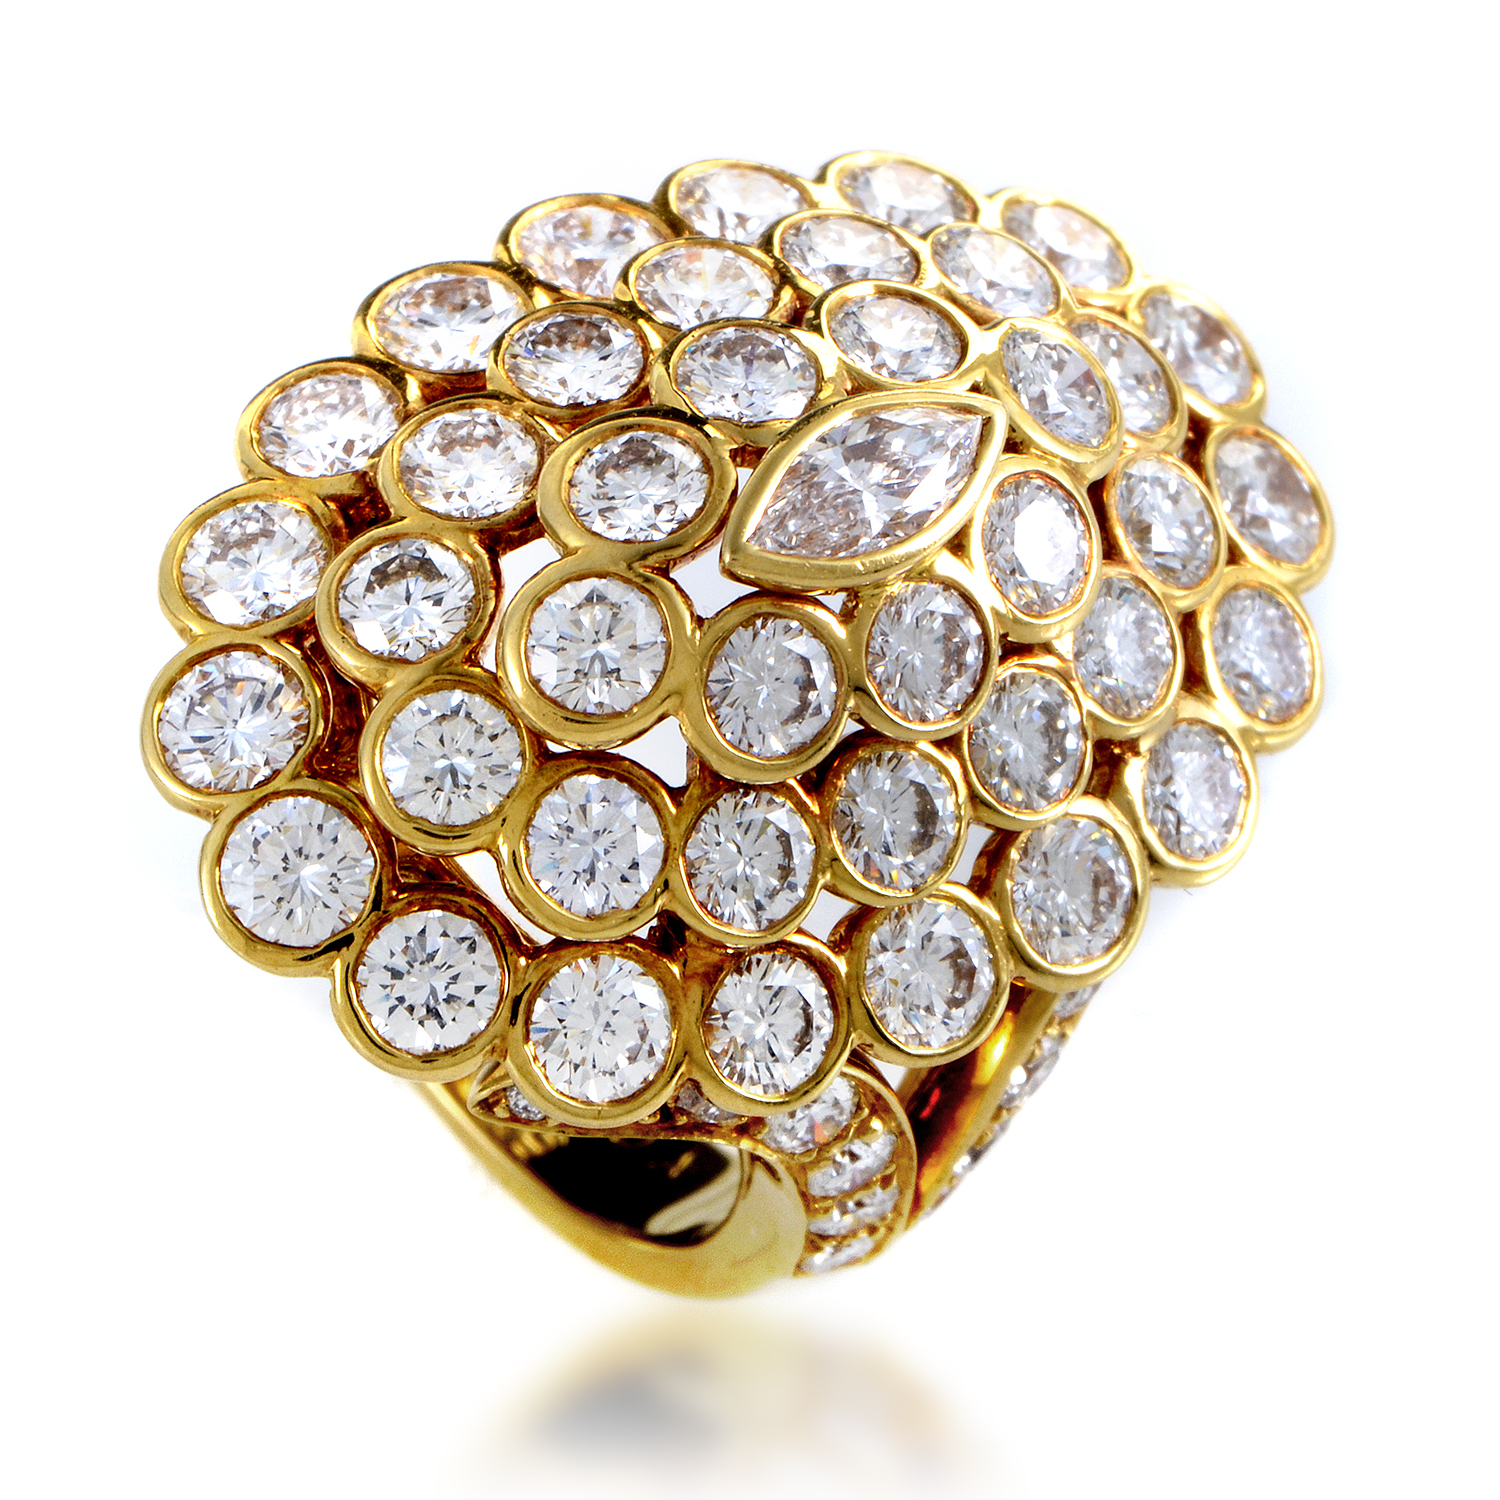 Cartier Women's 18K Yellow Gold Diamond Cluster Ring